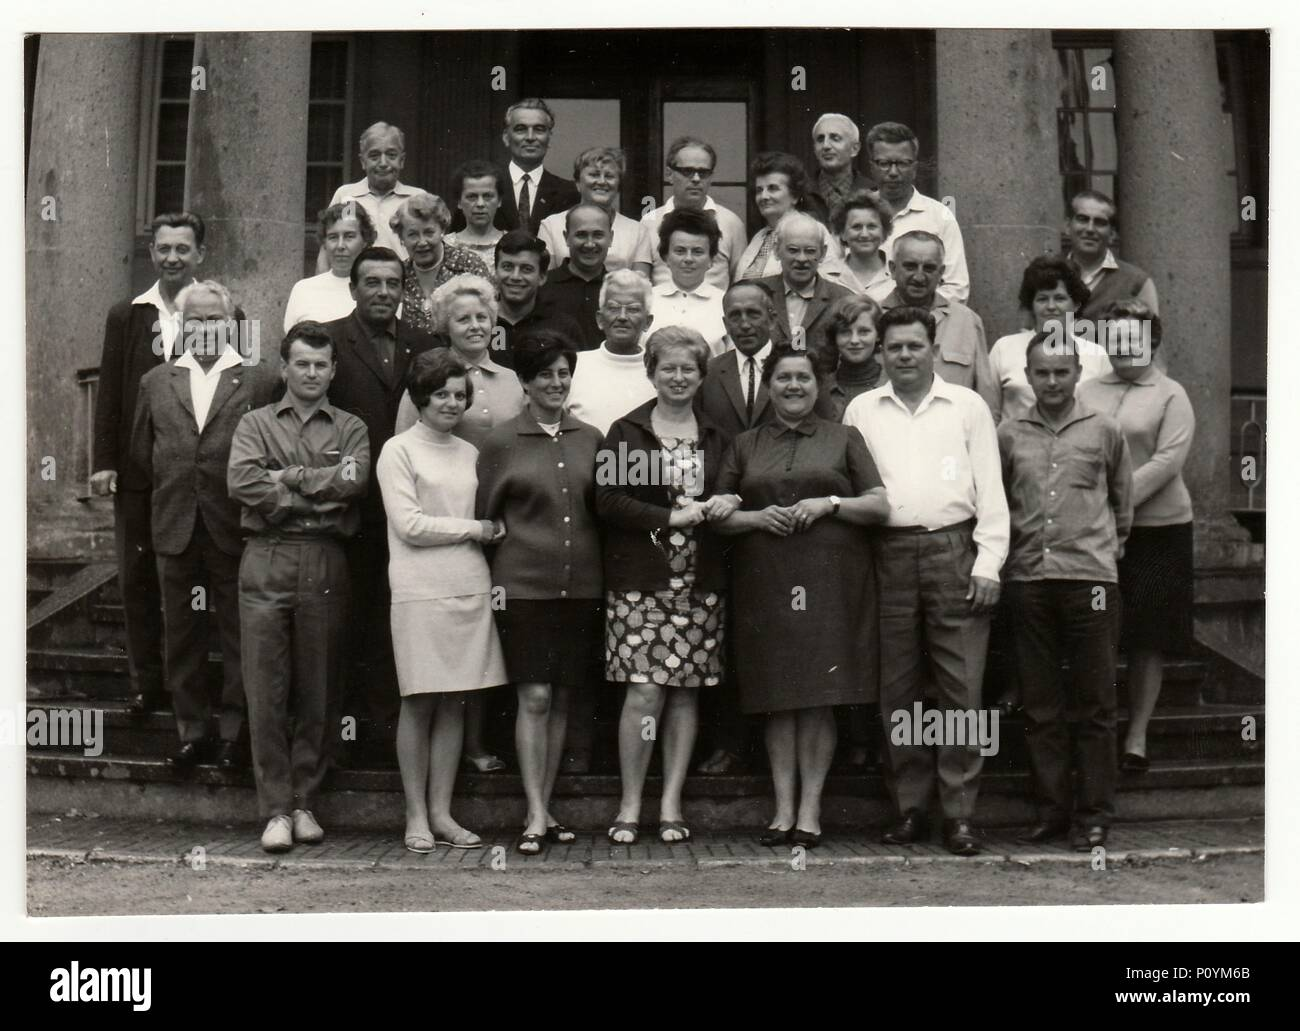 THE CZECHOSLOVAK SOCIALIST REPUBLIC, CIRCA 1970s: Vintage photo shows group of people in front of building, circa 1970s. Stock Photo